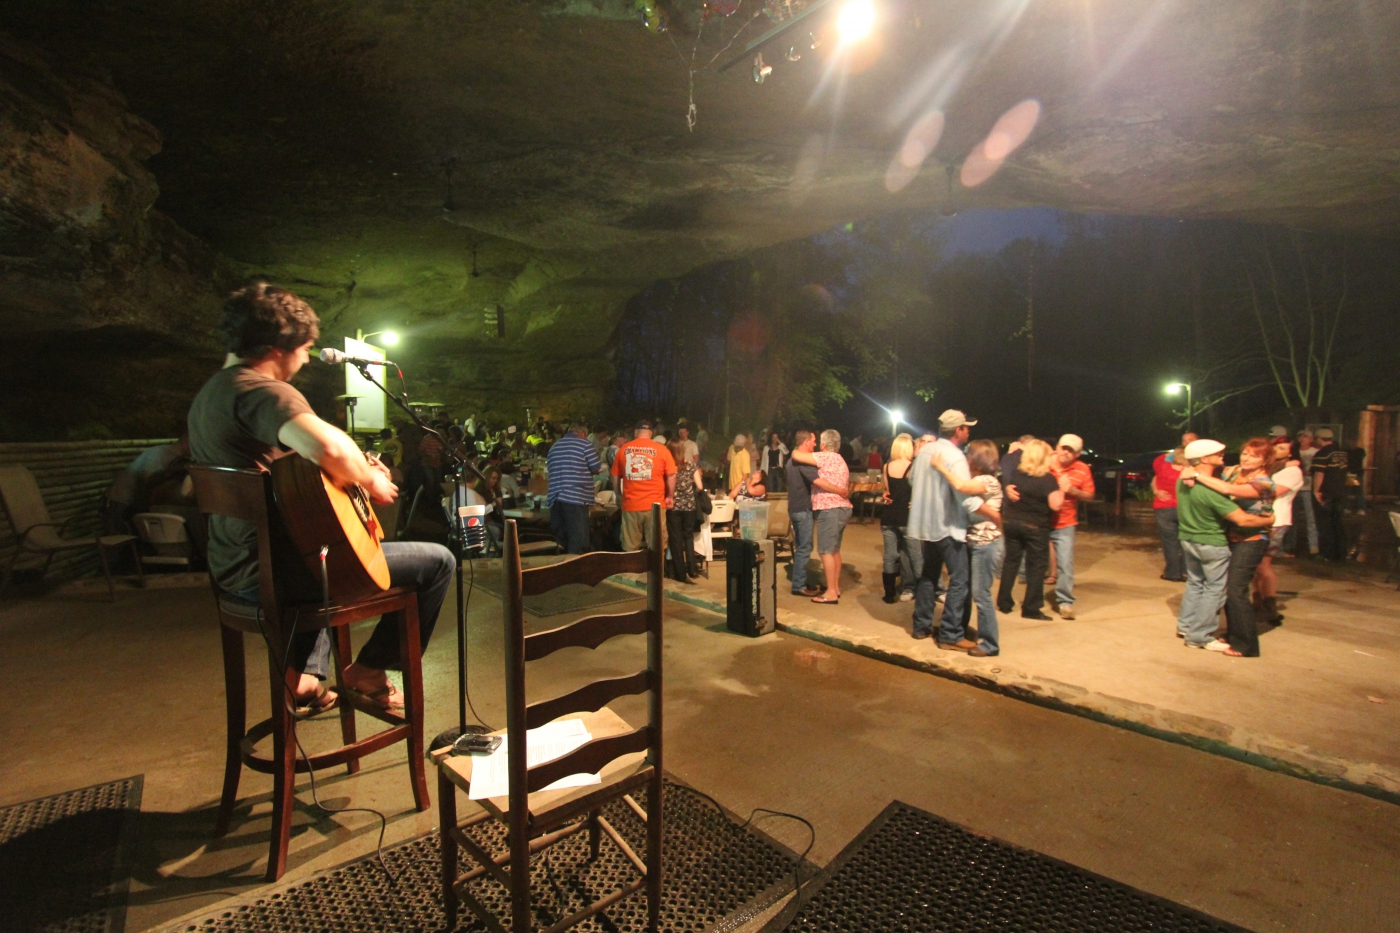 One of the South's most unusual and fun places to dance to live music is the Rattlesnake Saloon, located in a shallow cave in Tuscumbia.